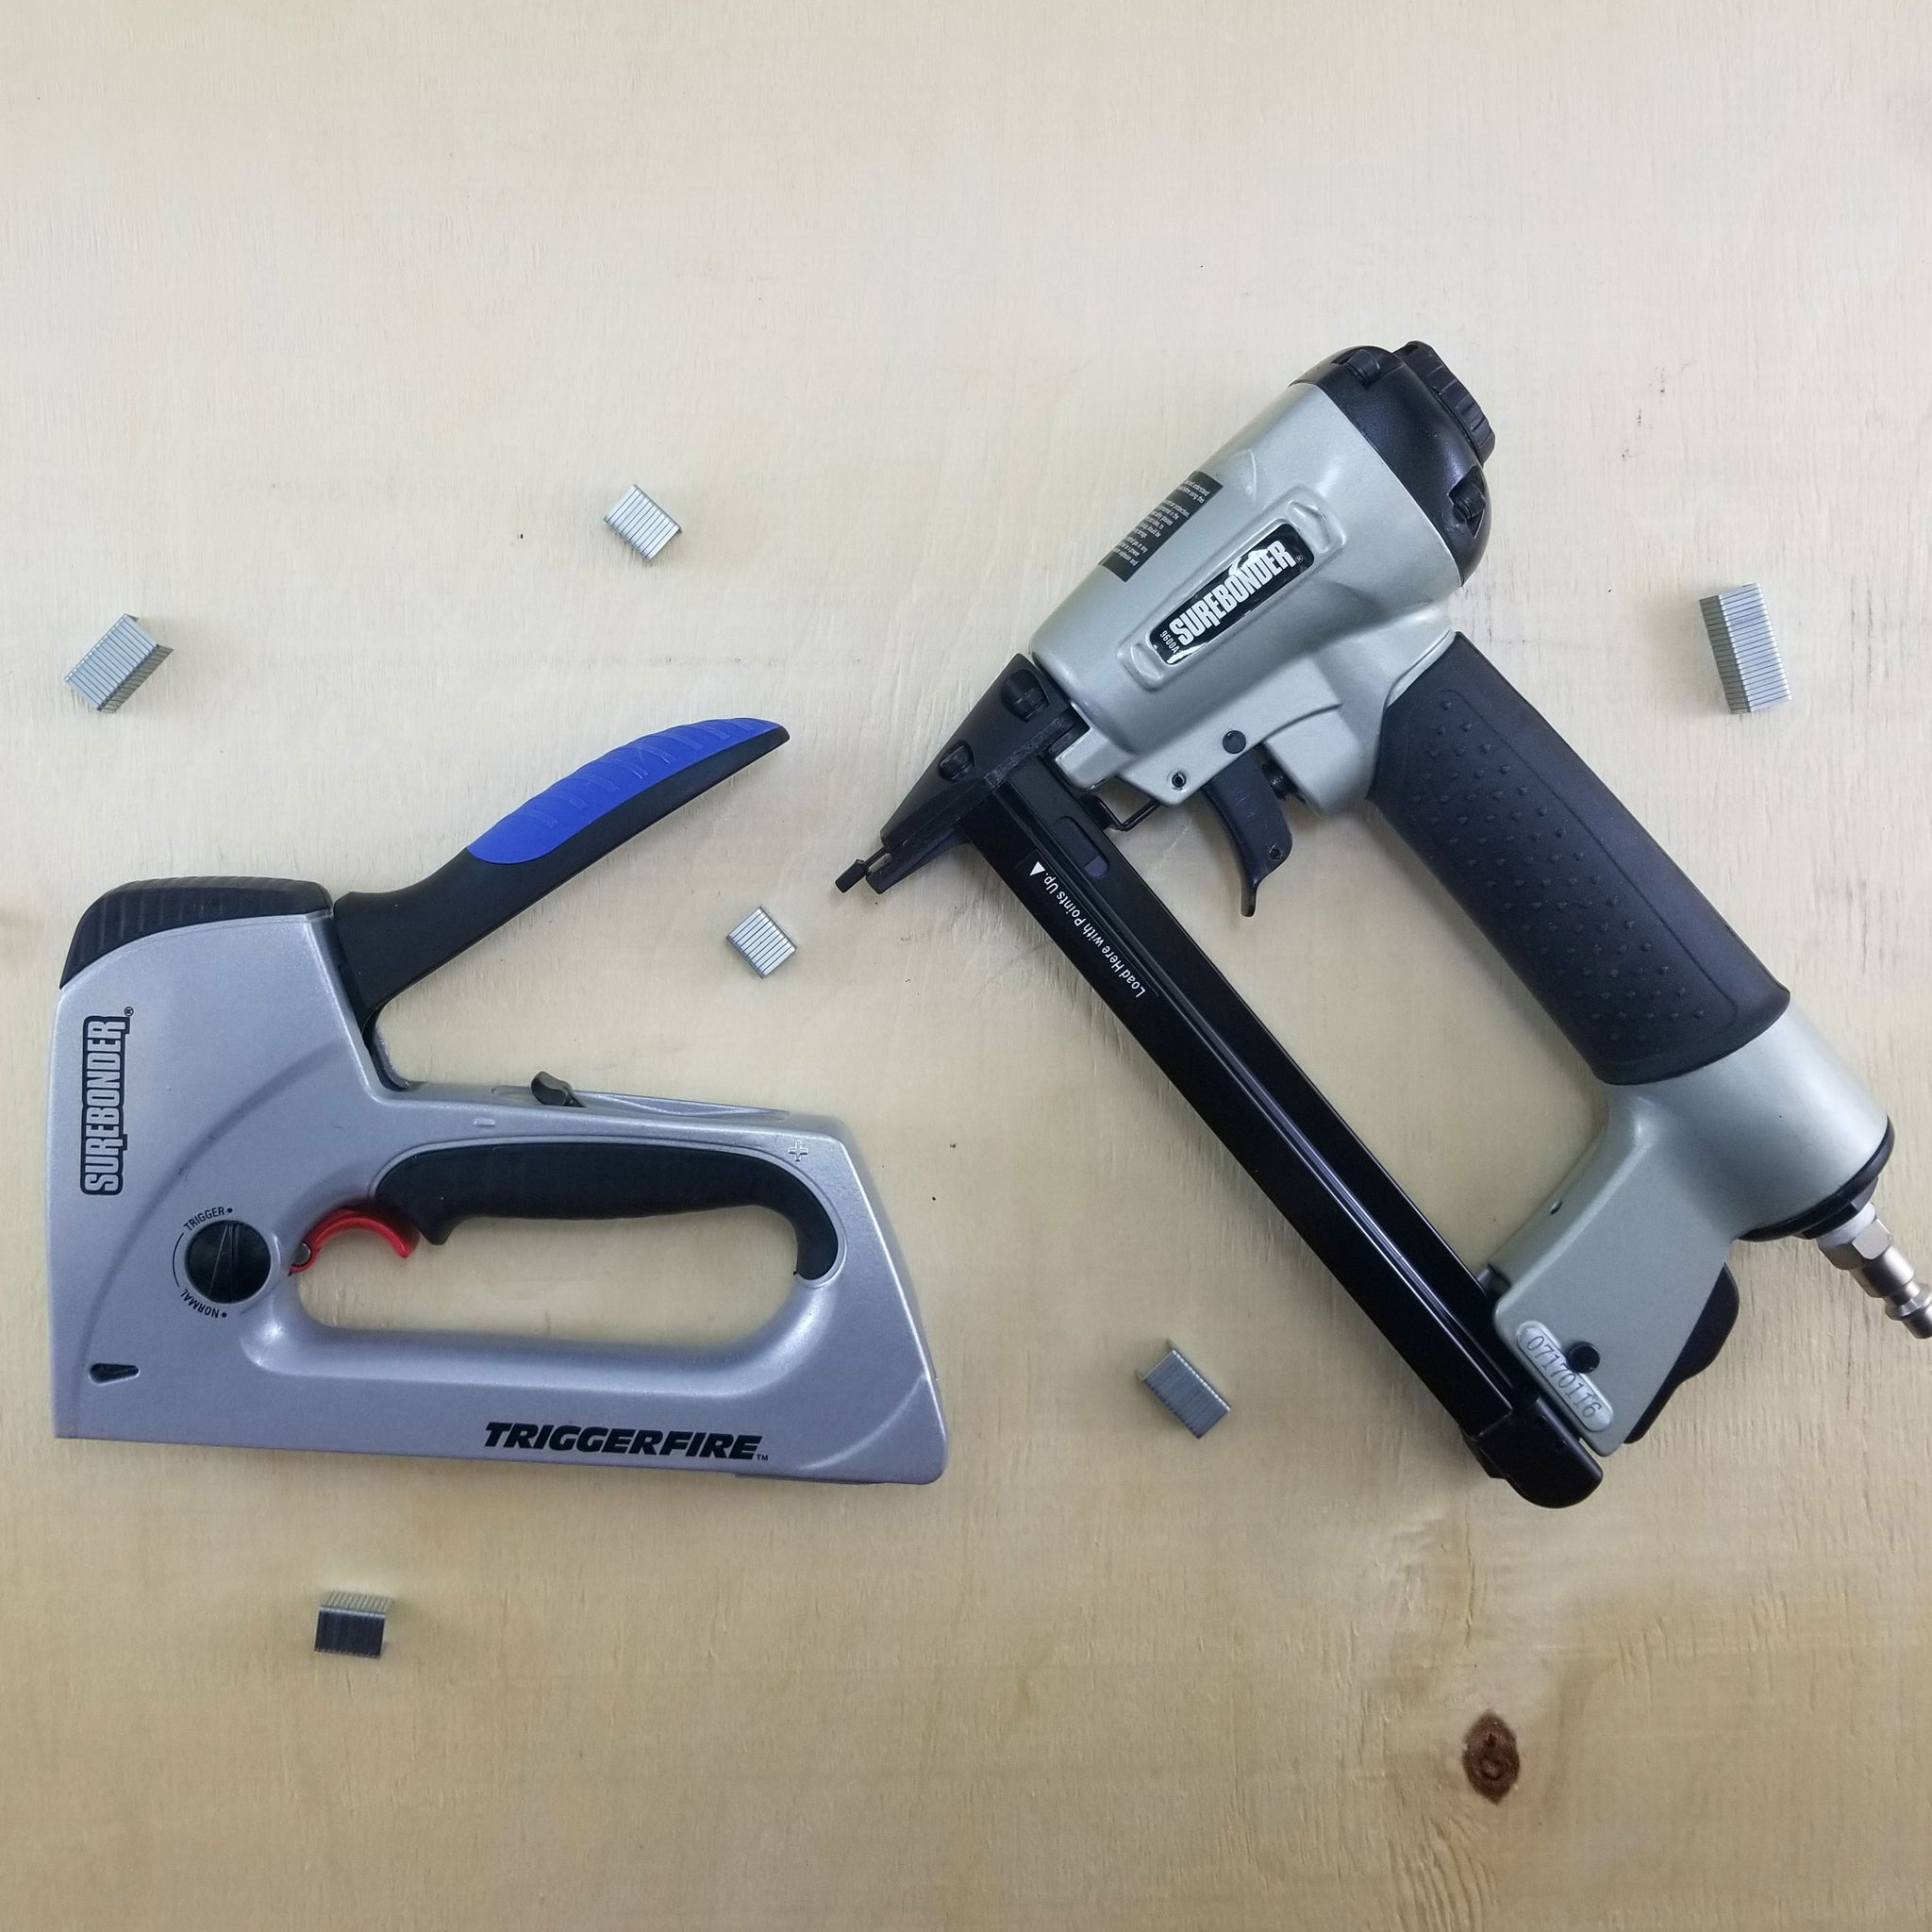 How to choose a pneumatic gun for sports training 20